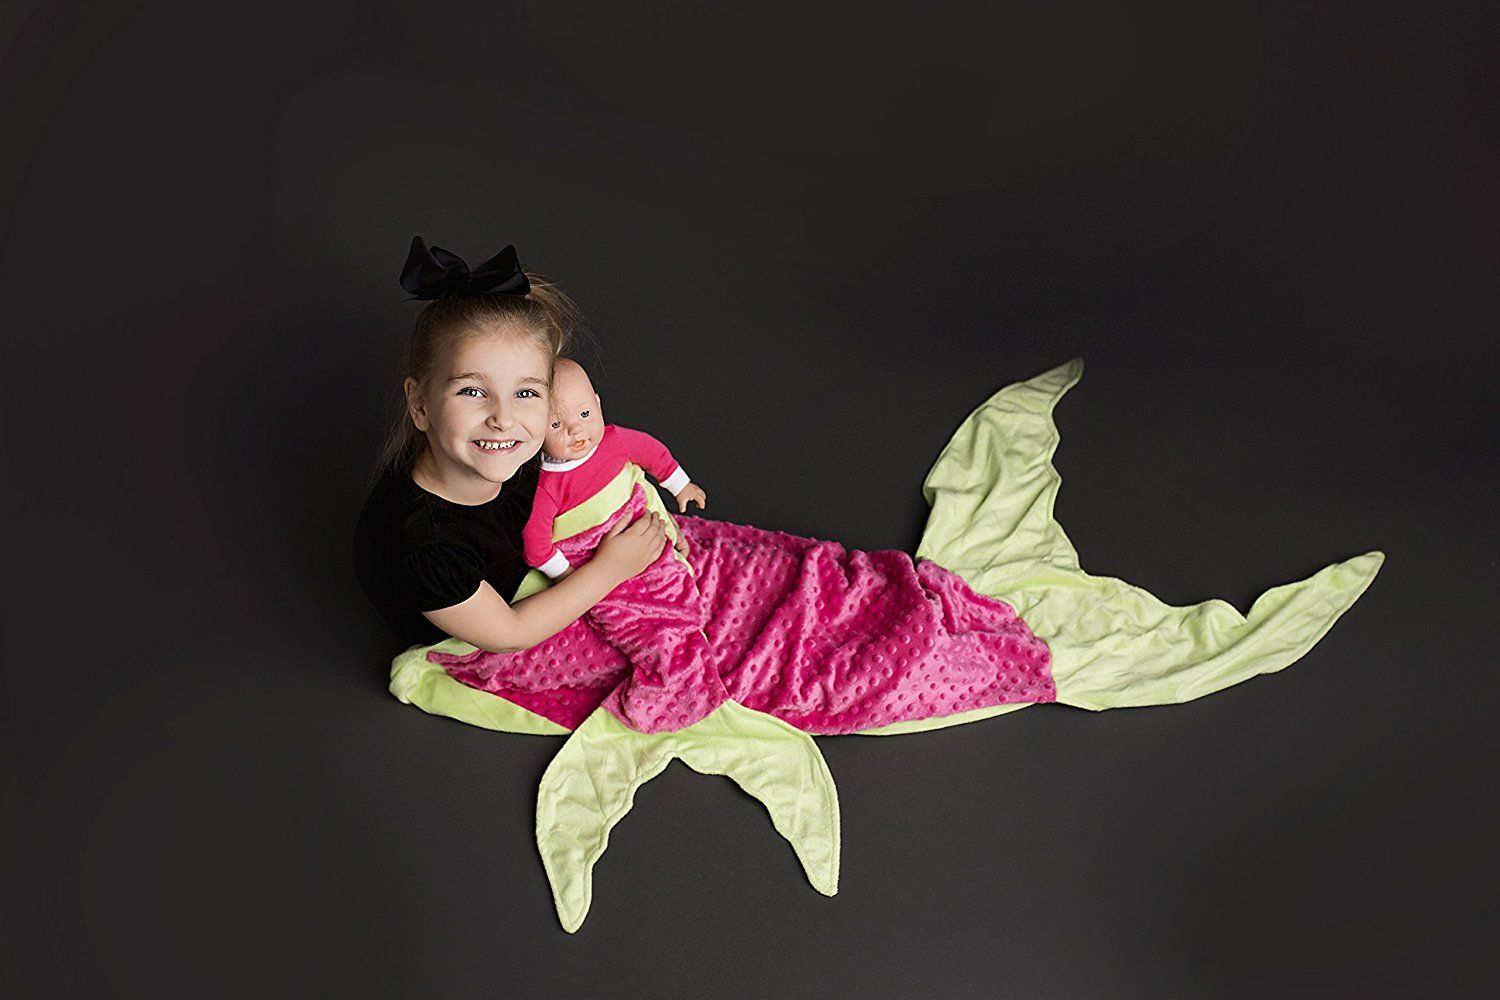 Amazon.com: PoshPeanut Mermaid Blanket Softest Minky Comfy Cozy Blankie for Kids Ages 3-13 with FREE Toy Doll Blanket Included (Aqua / Pink): Home & Kitchen